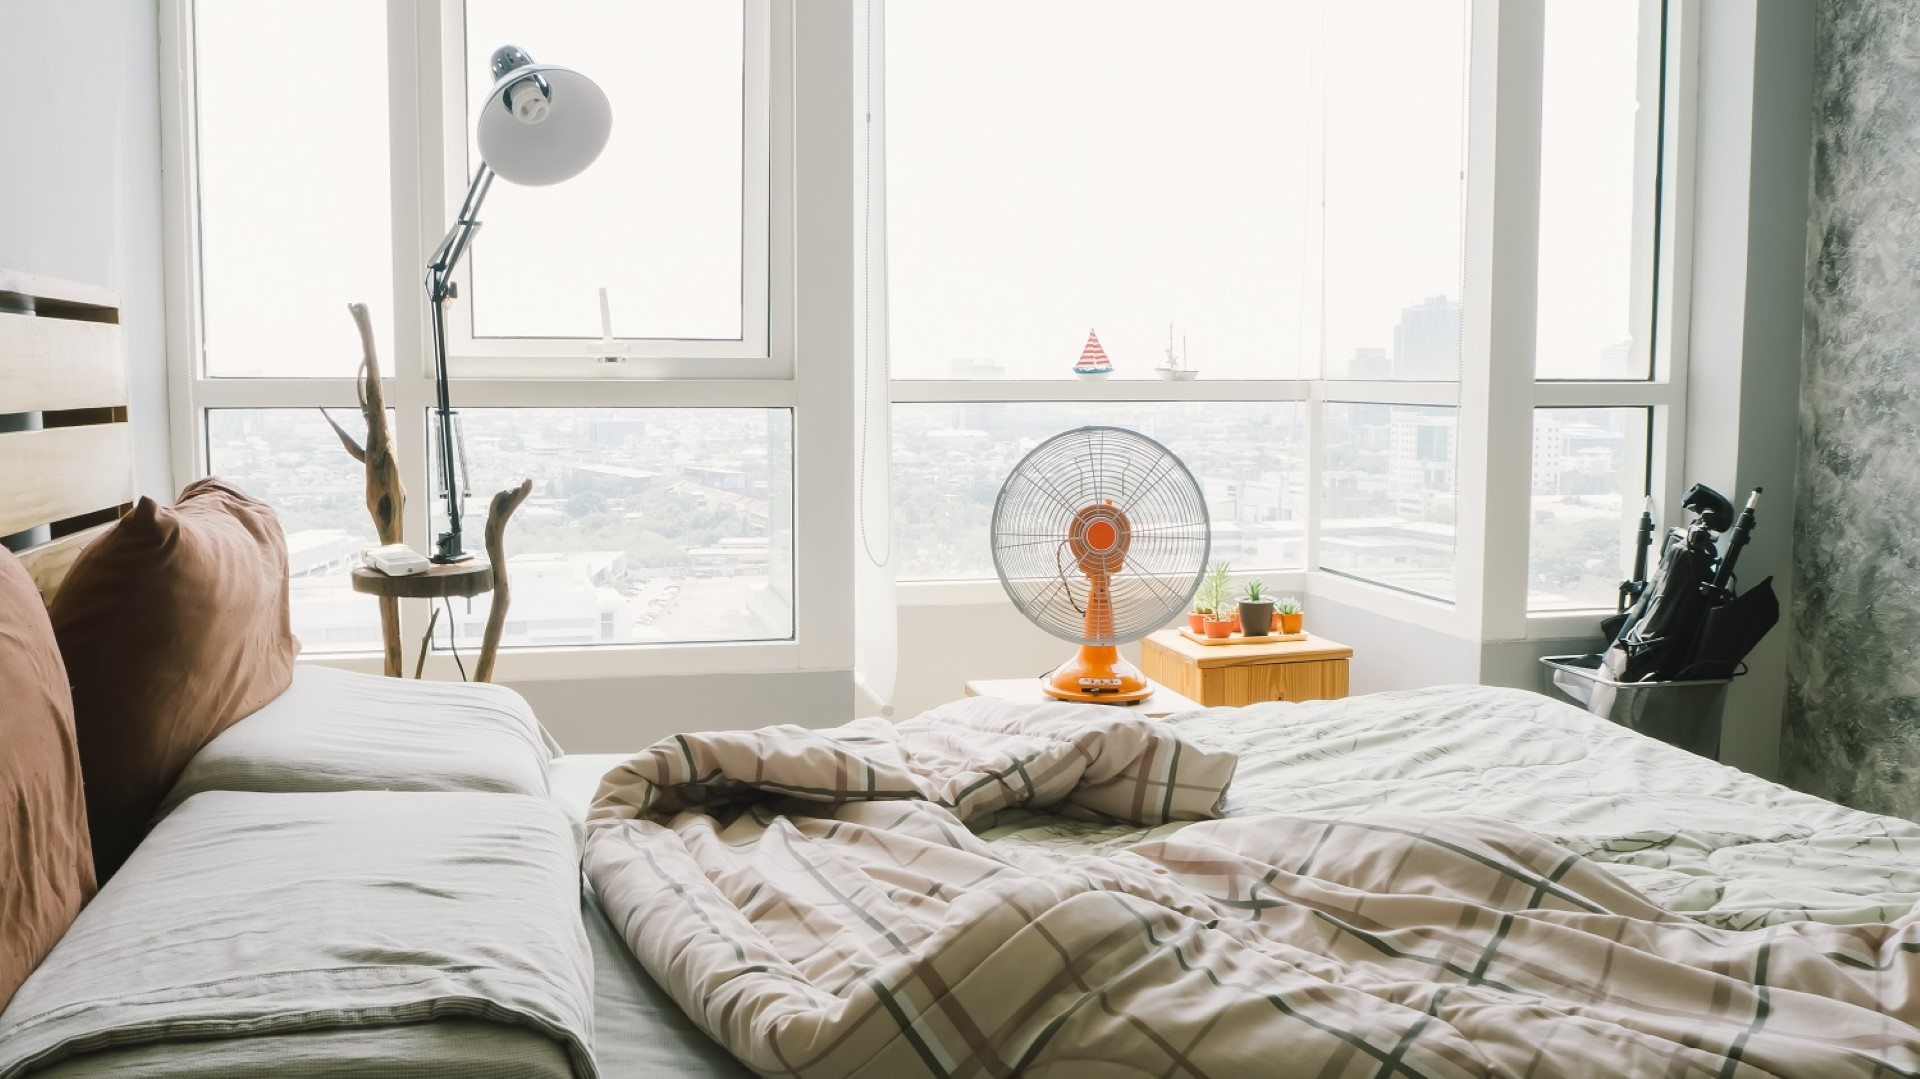 Using a Fan in the Bedroom